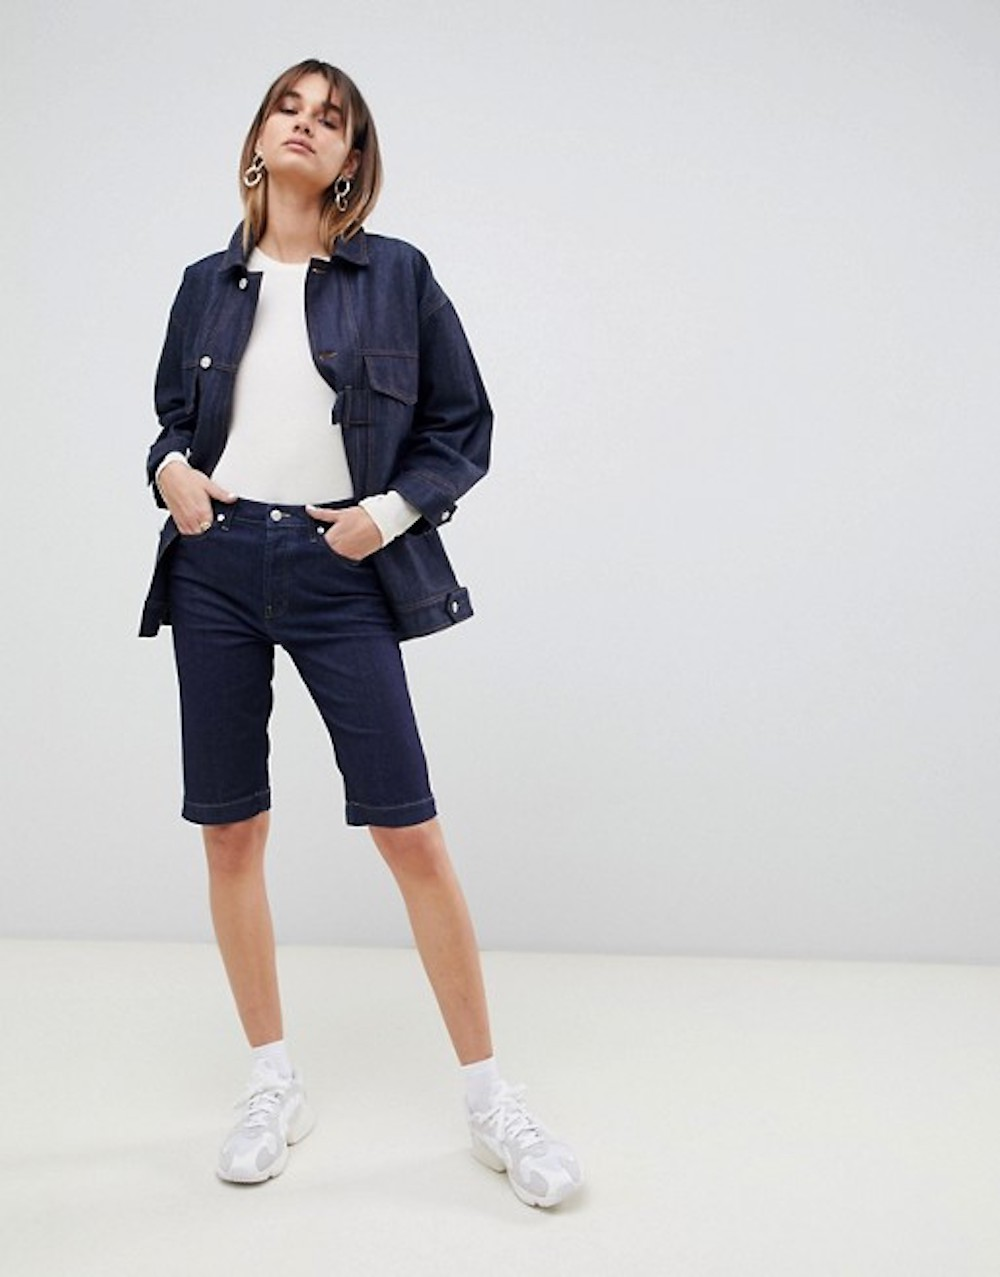 spring trends double denim